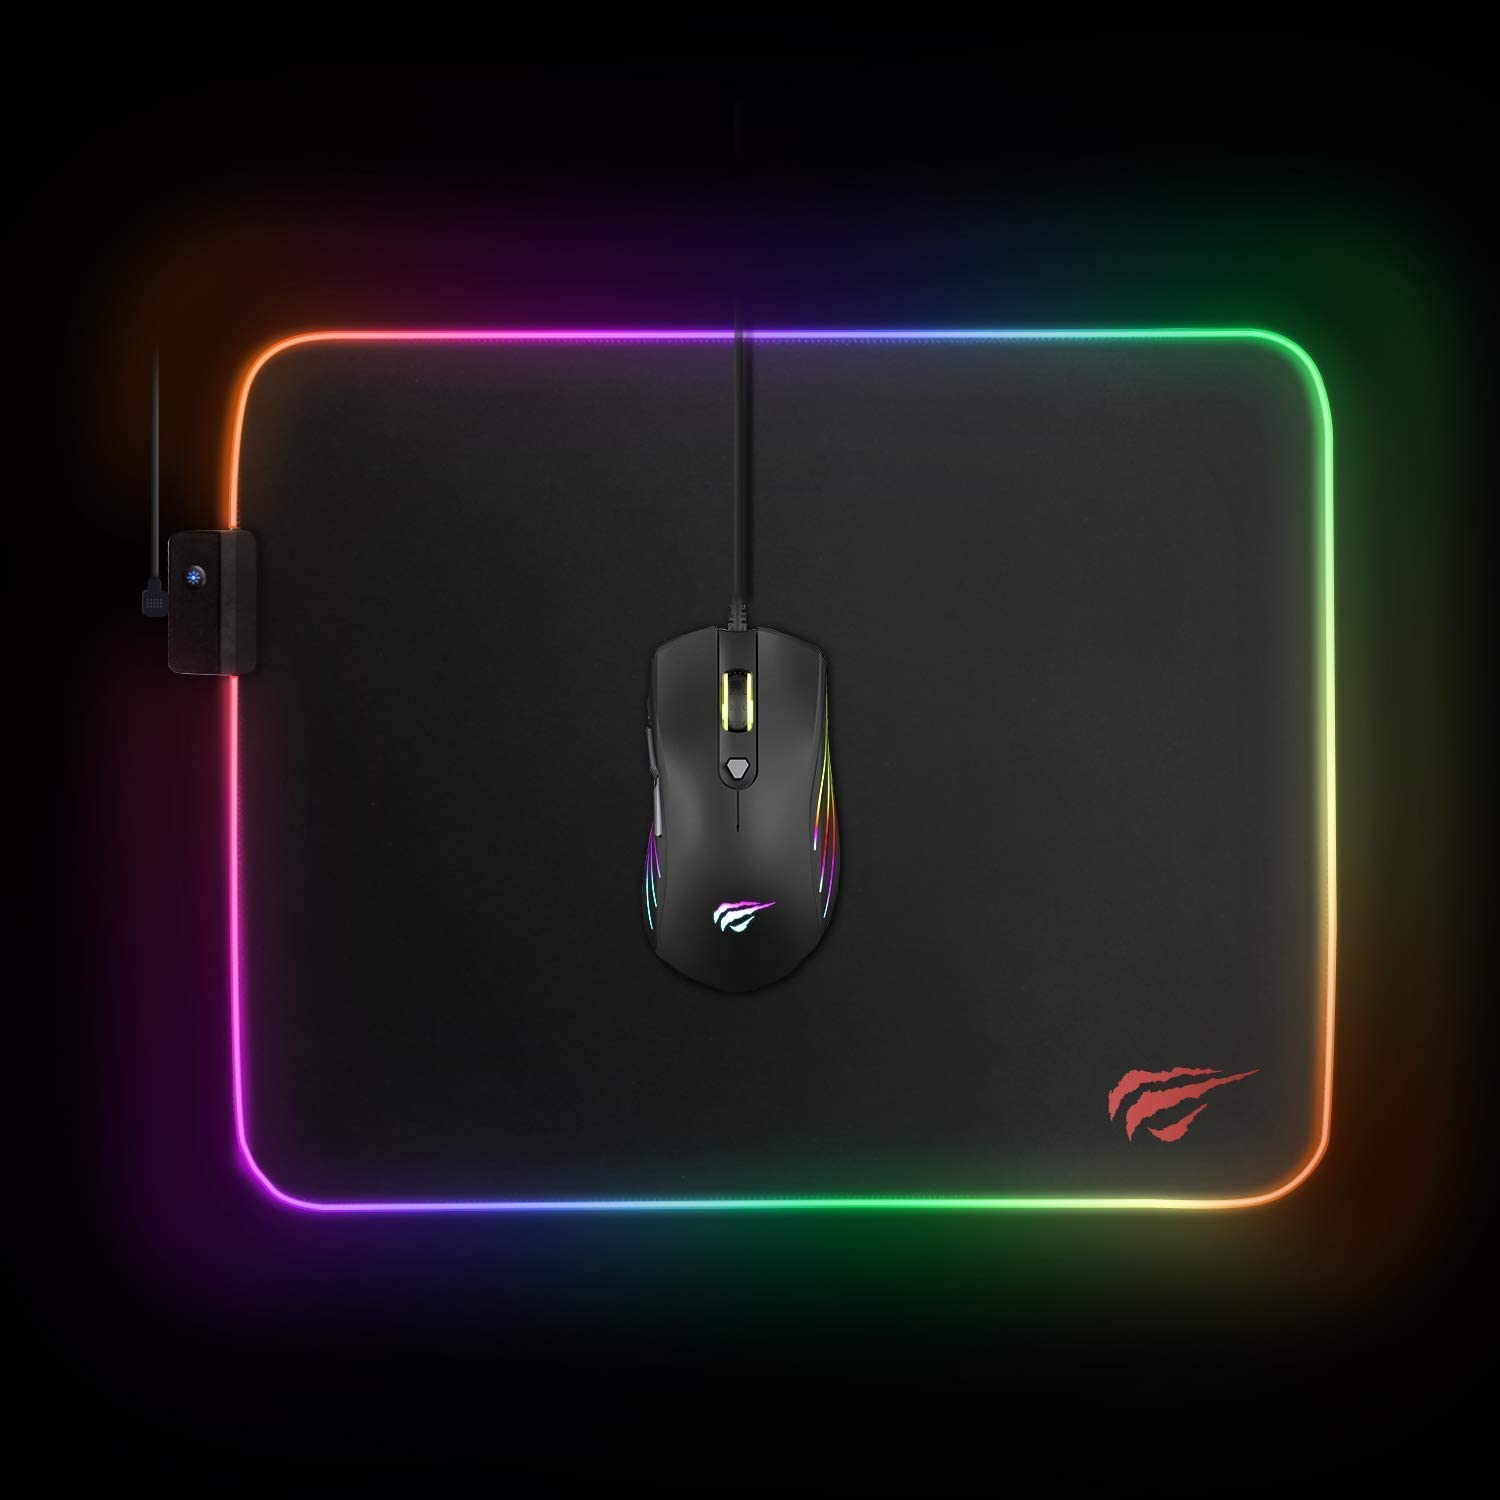 Size : Standard Size Black Alysays RGB Gaming Mouse Pad 800 300 4mm XXL Extra Large Extended Keyboard and Mouse Mat for Desktop with Non-Slip Rubber Base